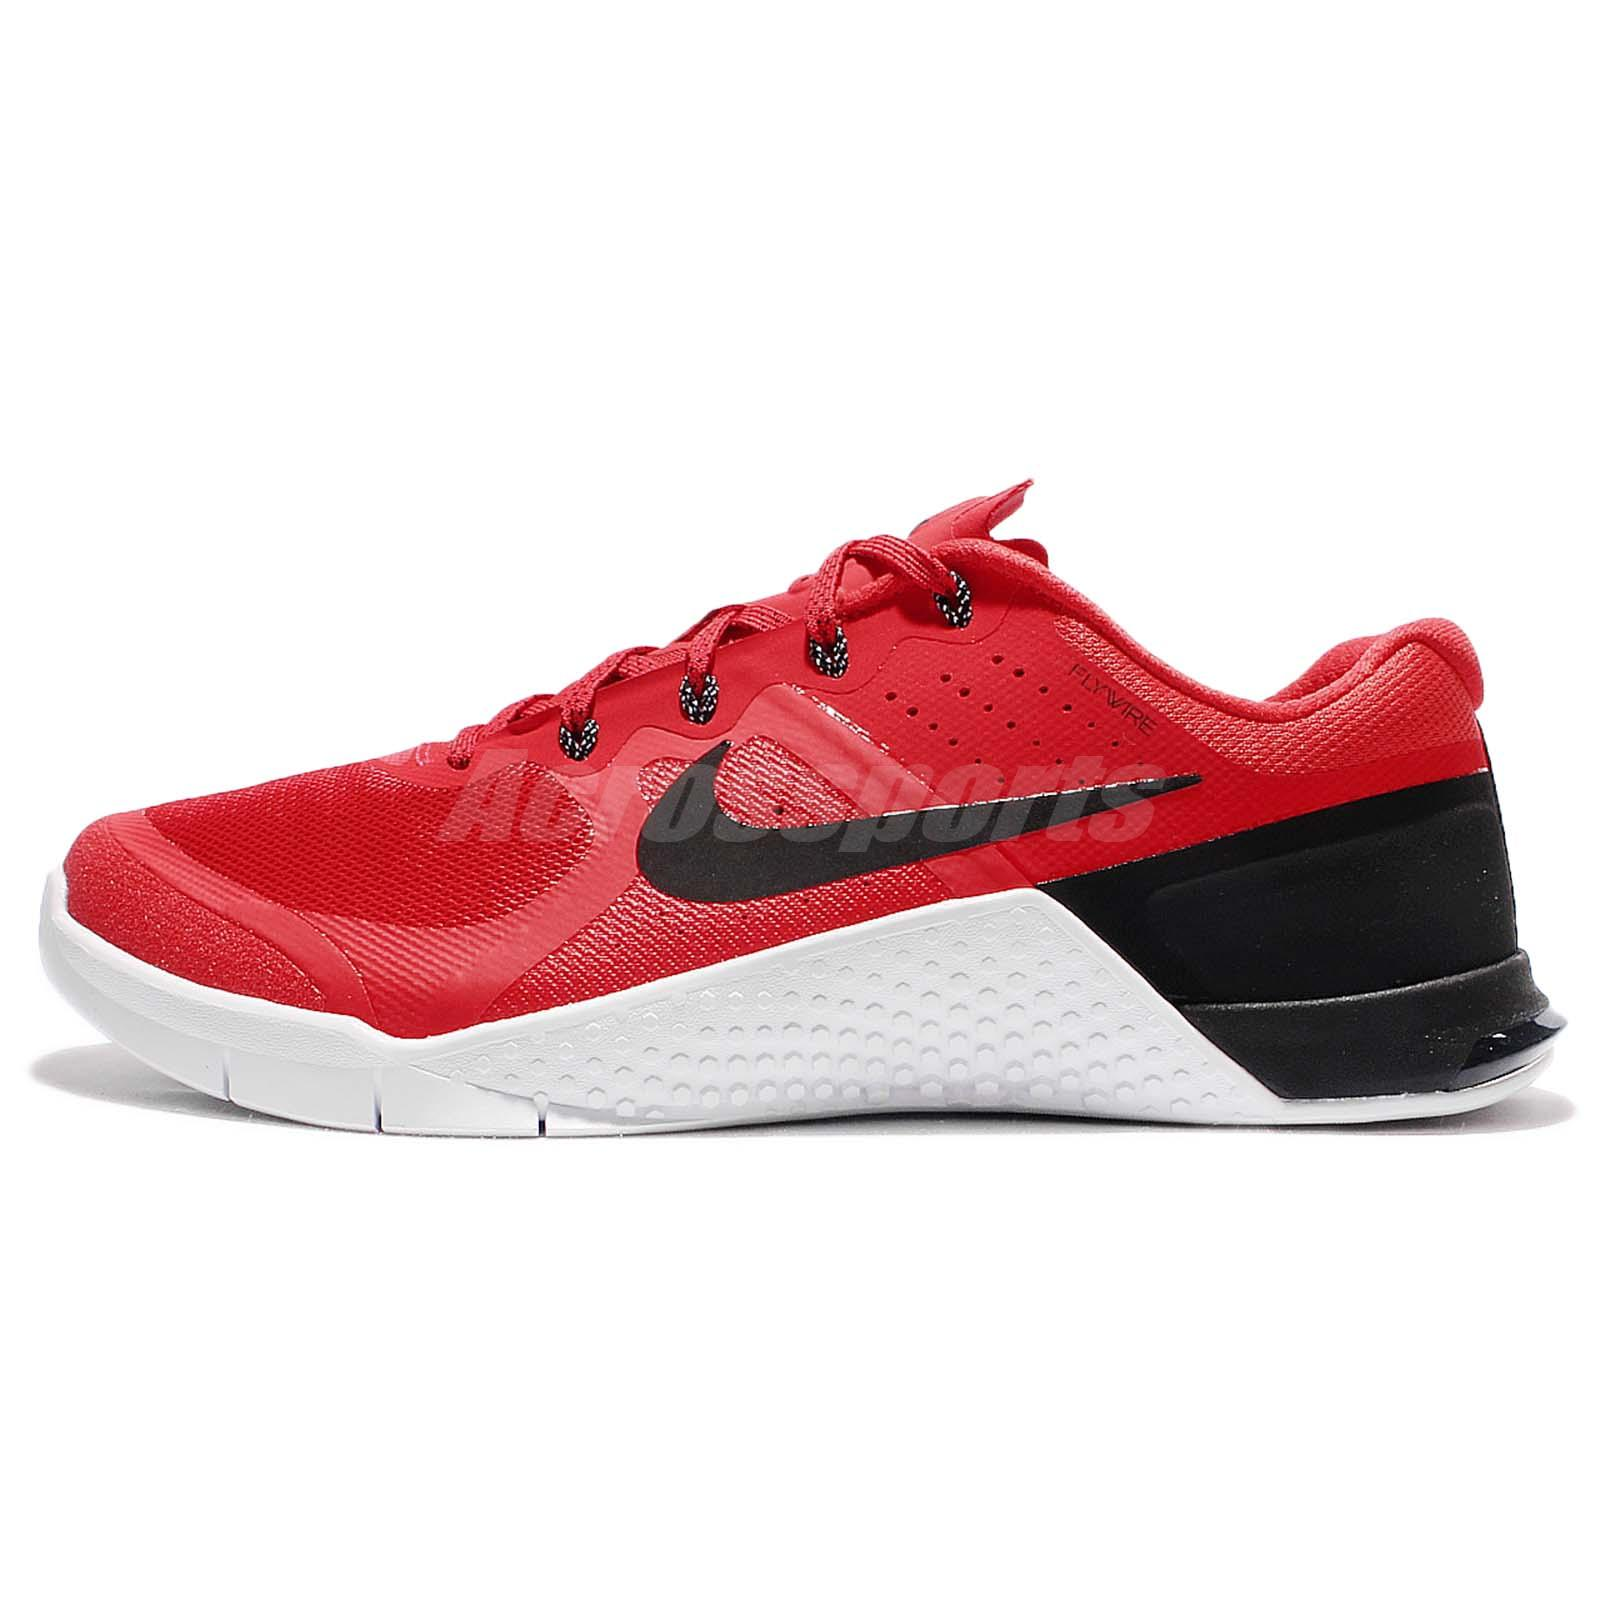 Nike Metcon 2 II Red Black Men Cross Training Shoes Trainers CrossFit 819899 -601